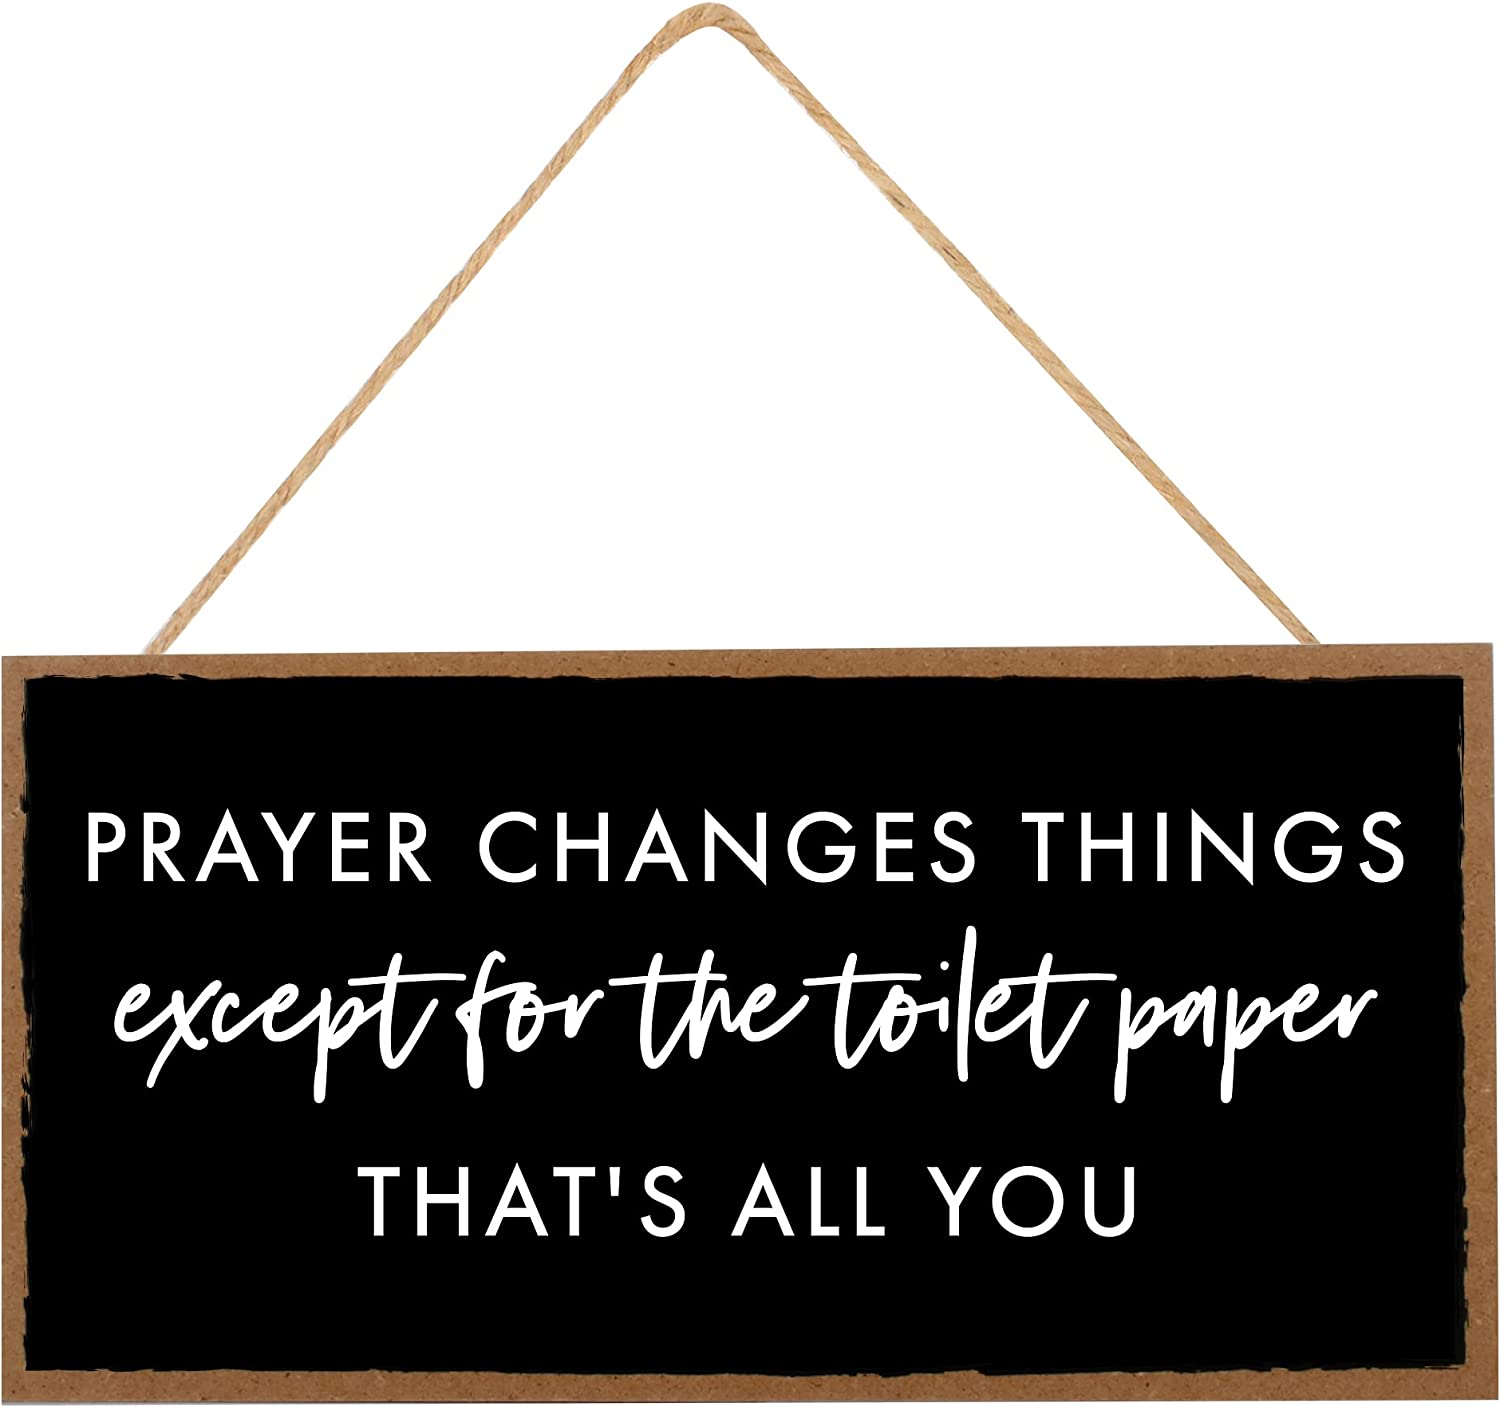 Funny Christian Bathroom Decor Sign - Prayer Changes Things Except for the Toilet Paper - Farmhouse Home Prayer Religious Bible Verses, Wooden Art for Half Bathroom - 10